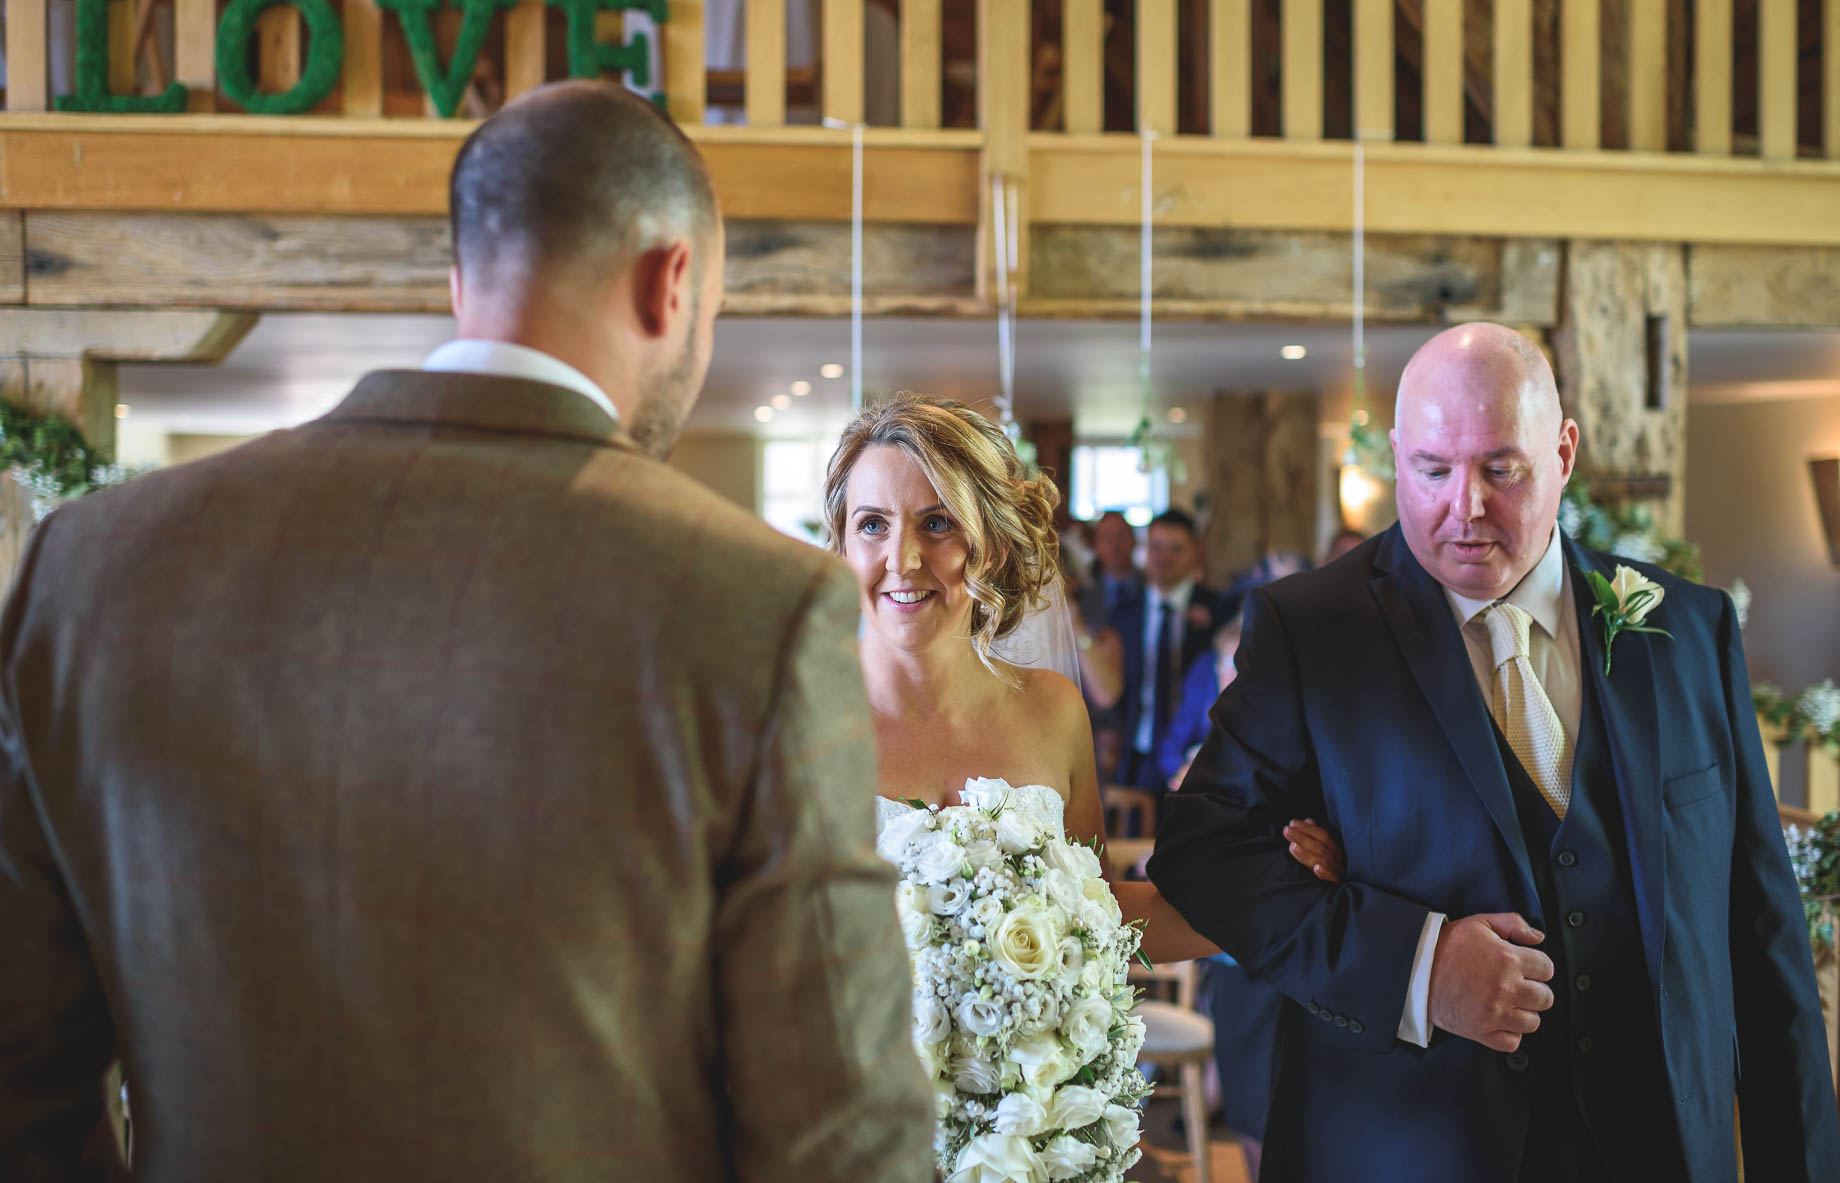 Bury Court Barn wedding photography - Guy Collier - Kate and Russ (66 of 187)